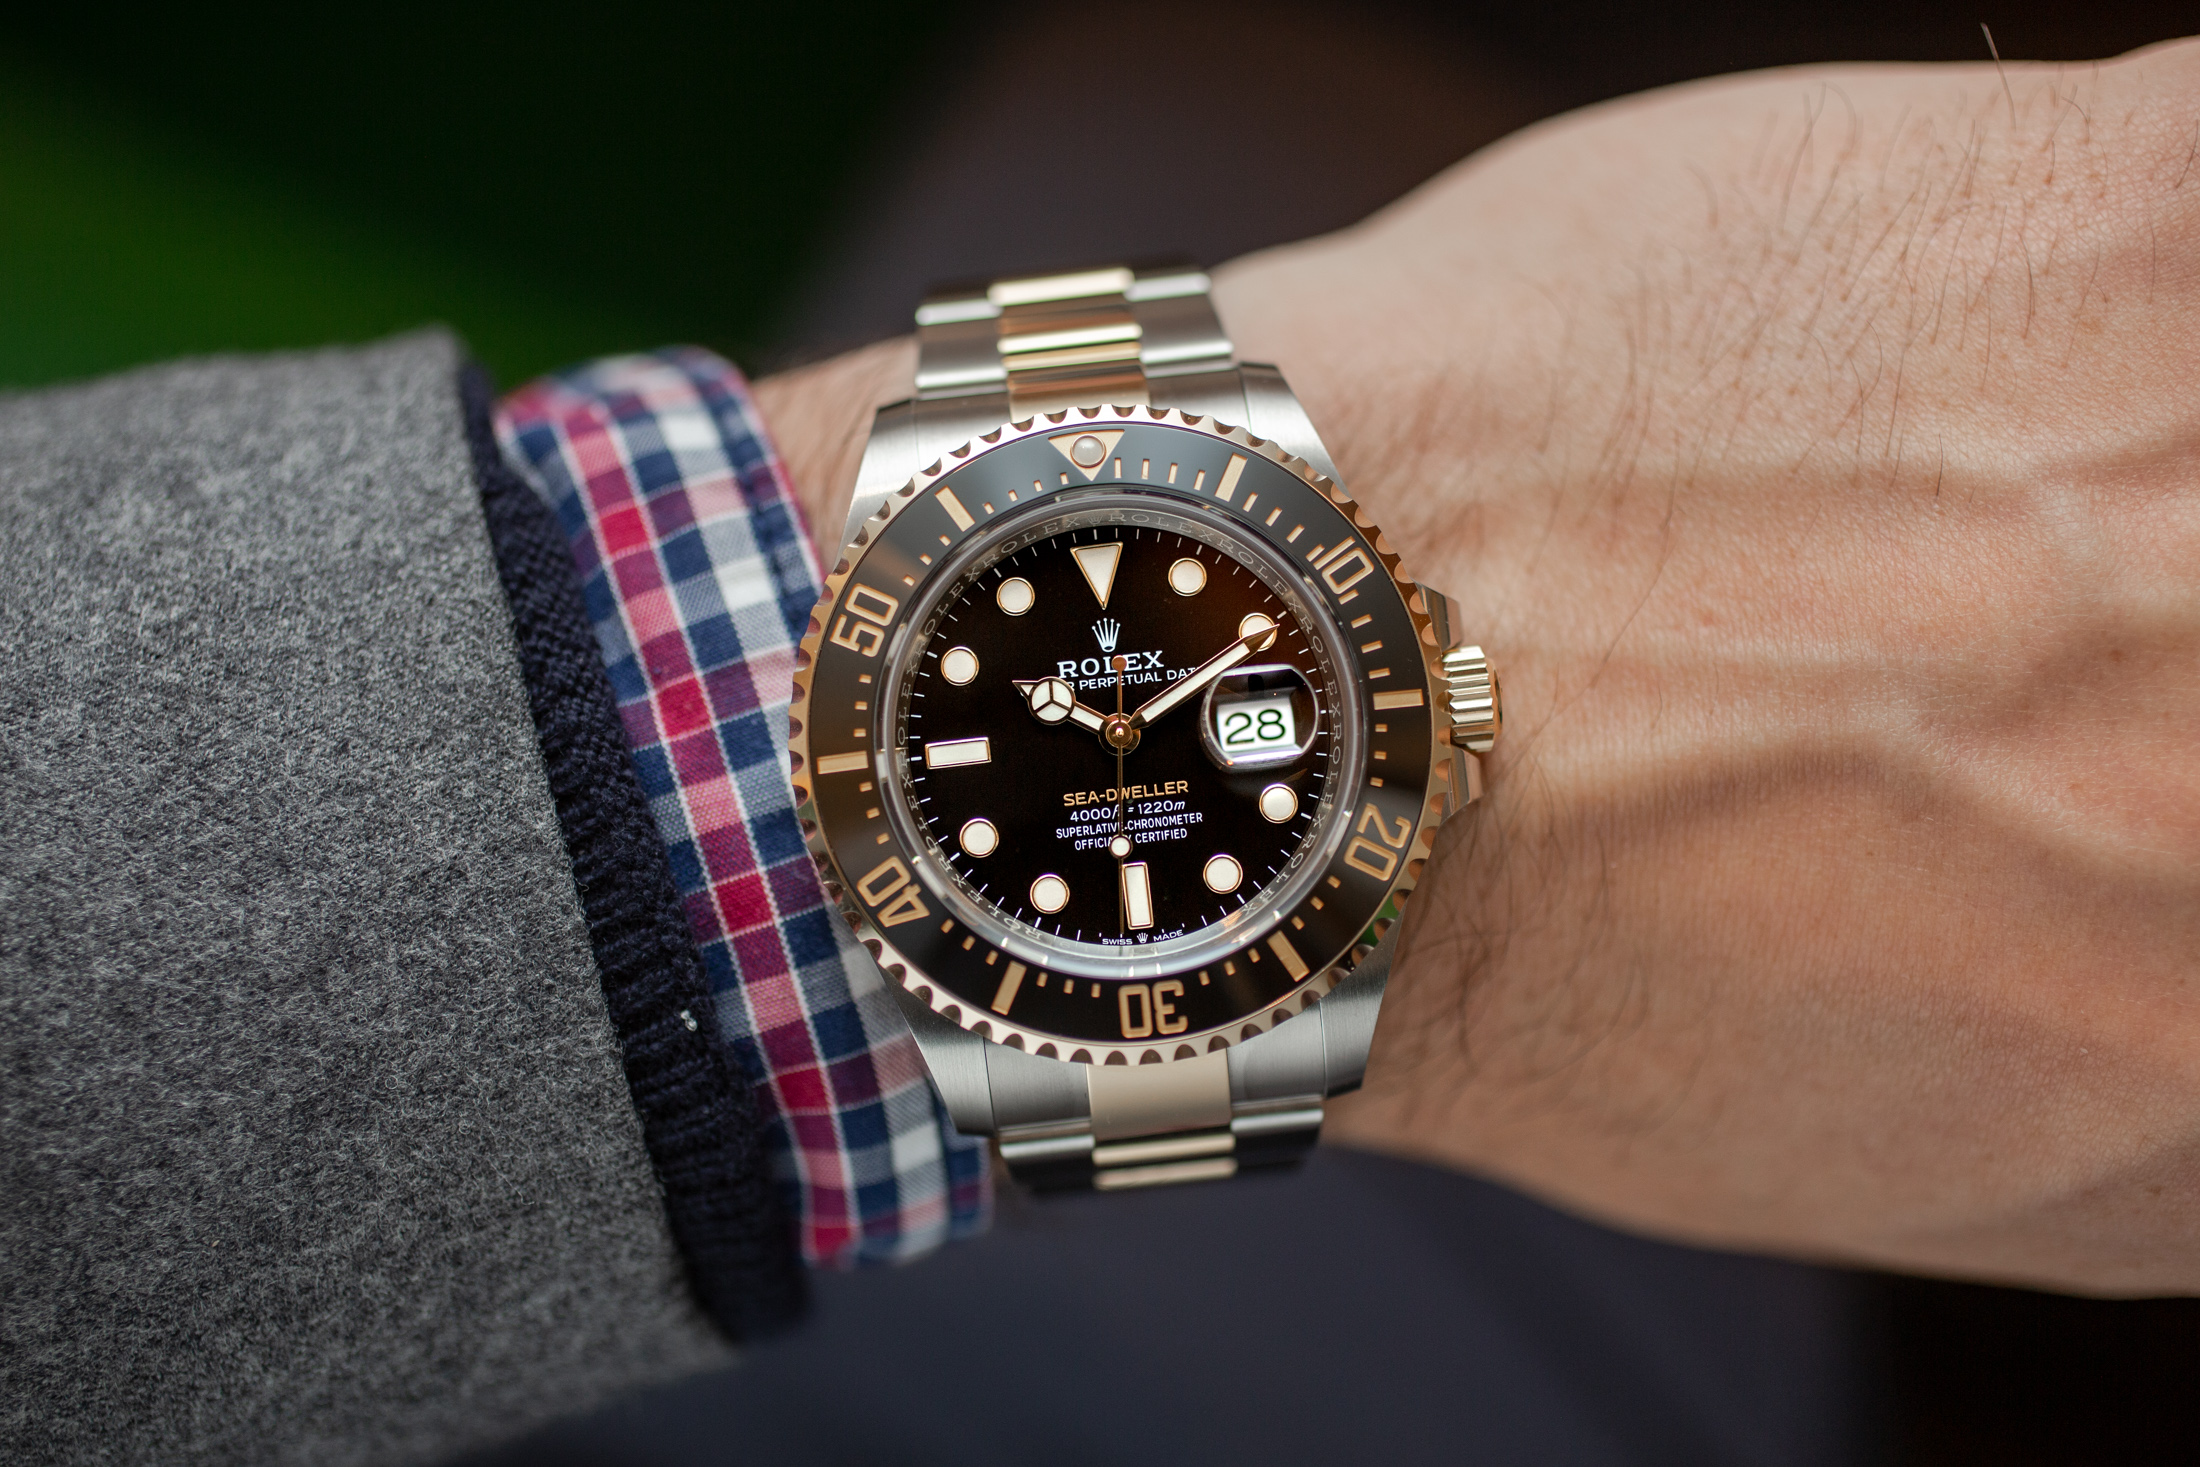 018ed3e82 Rolex Baselworld 2019 teaser. Any thoughts? - Page 7